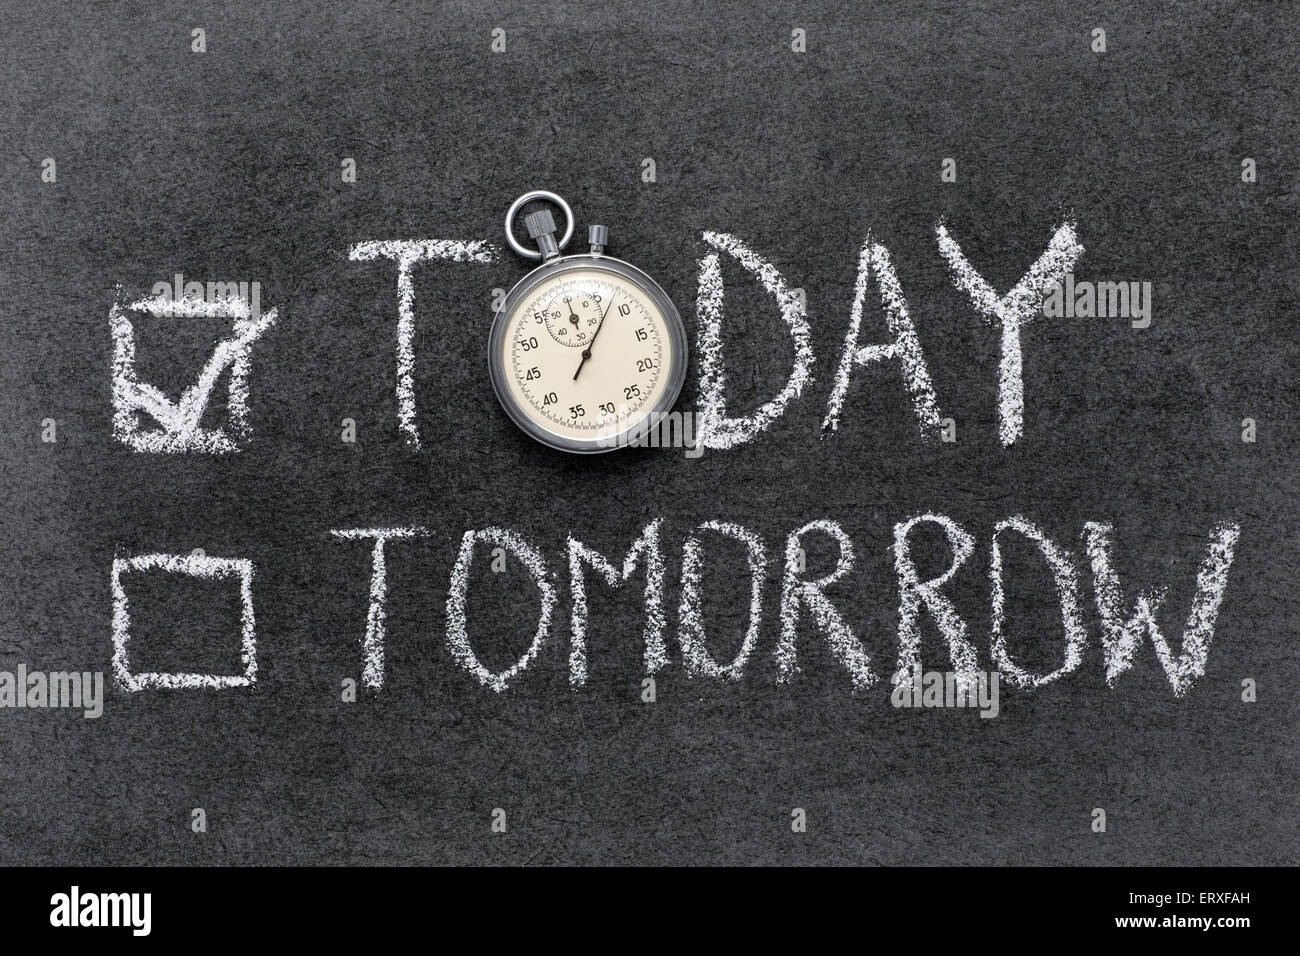 today or tomorrow concept handwritten on chalkboard with vintage precise stopwatch used instead of O - Stock Image